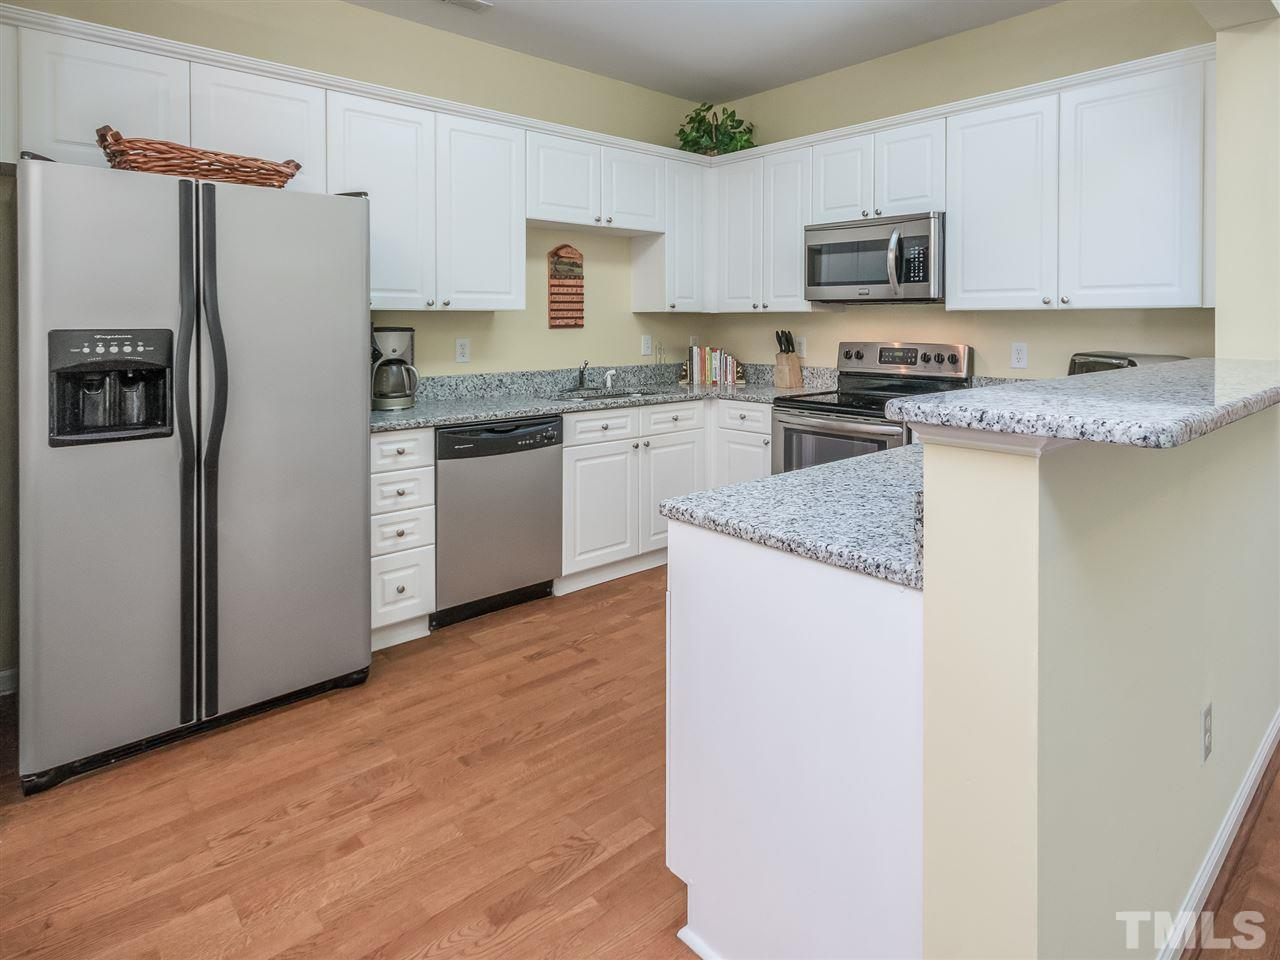 This kitchen is superb! Lots of counter space and cabinets, stainless appliances, open to the family room...sooo nice! Range is less than a year old! New Microwave and NEW GRANITE!!!